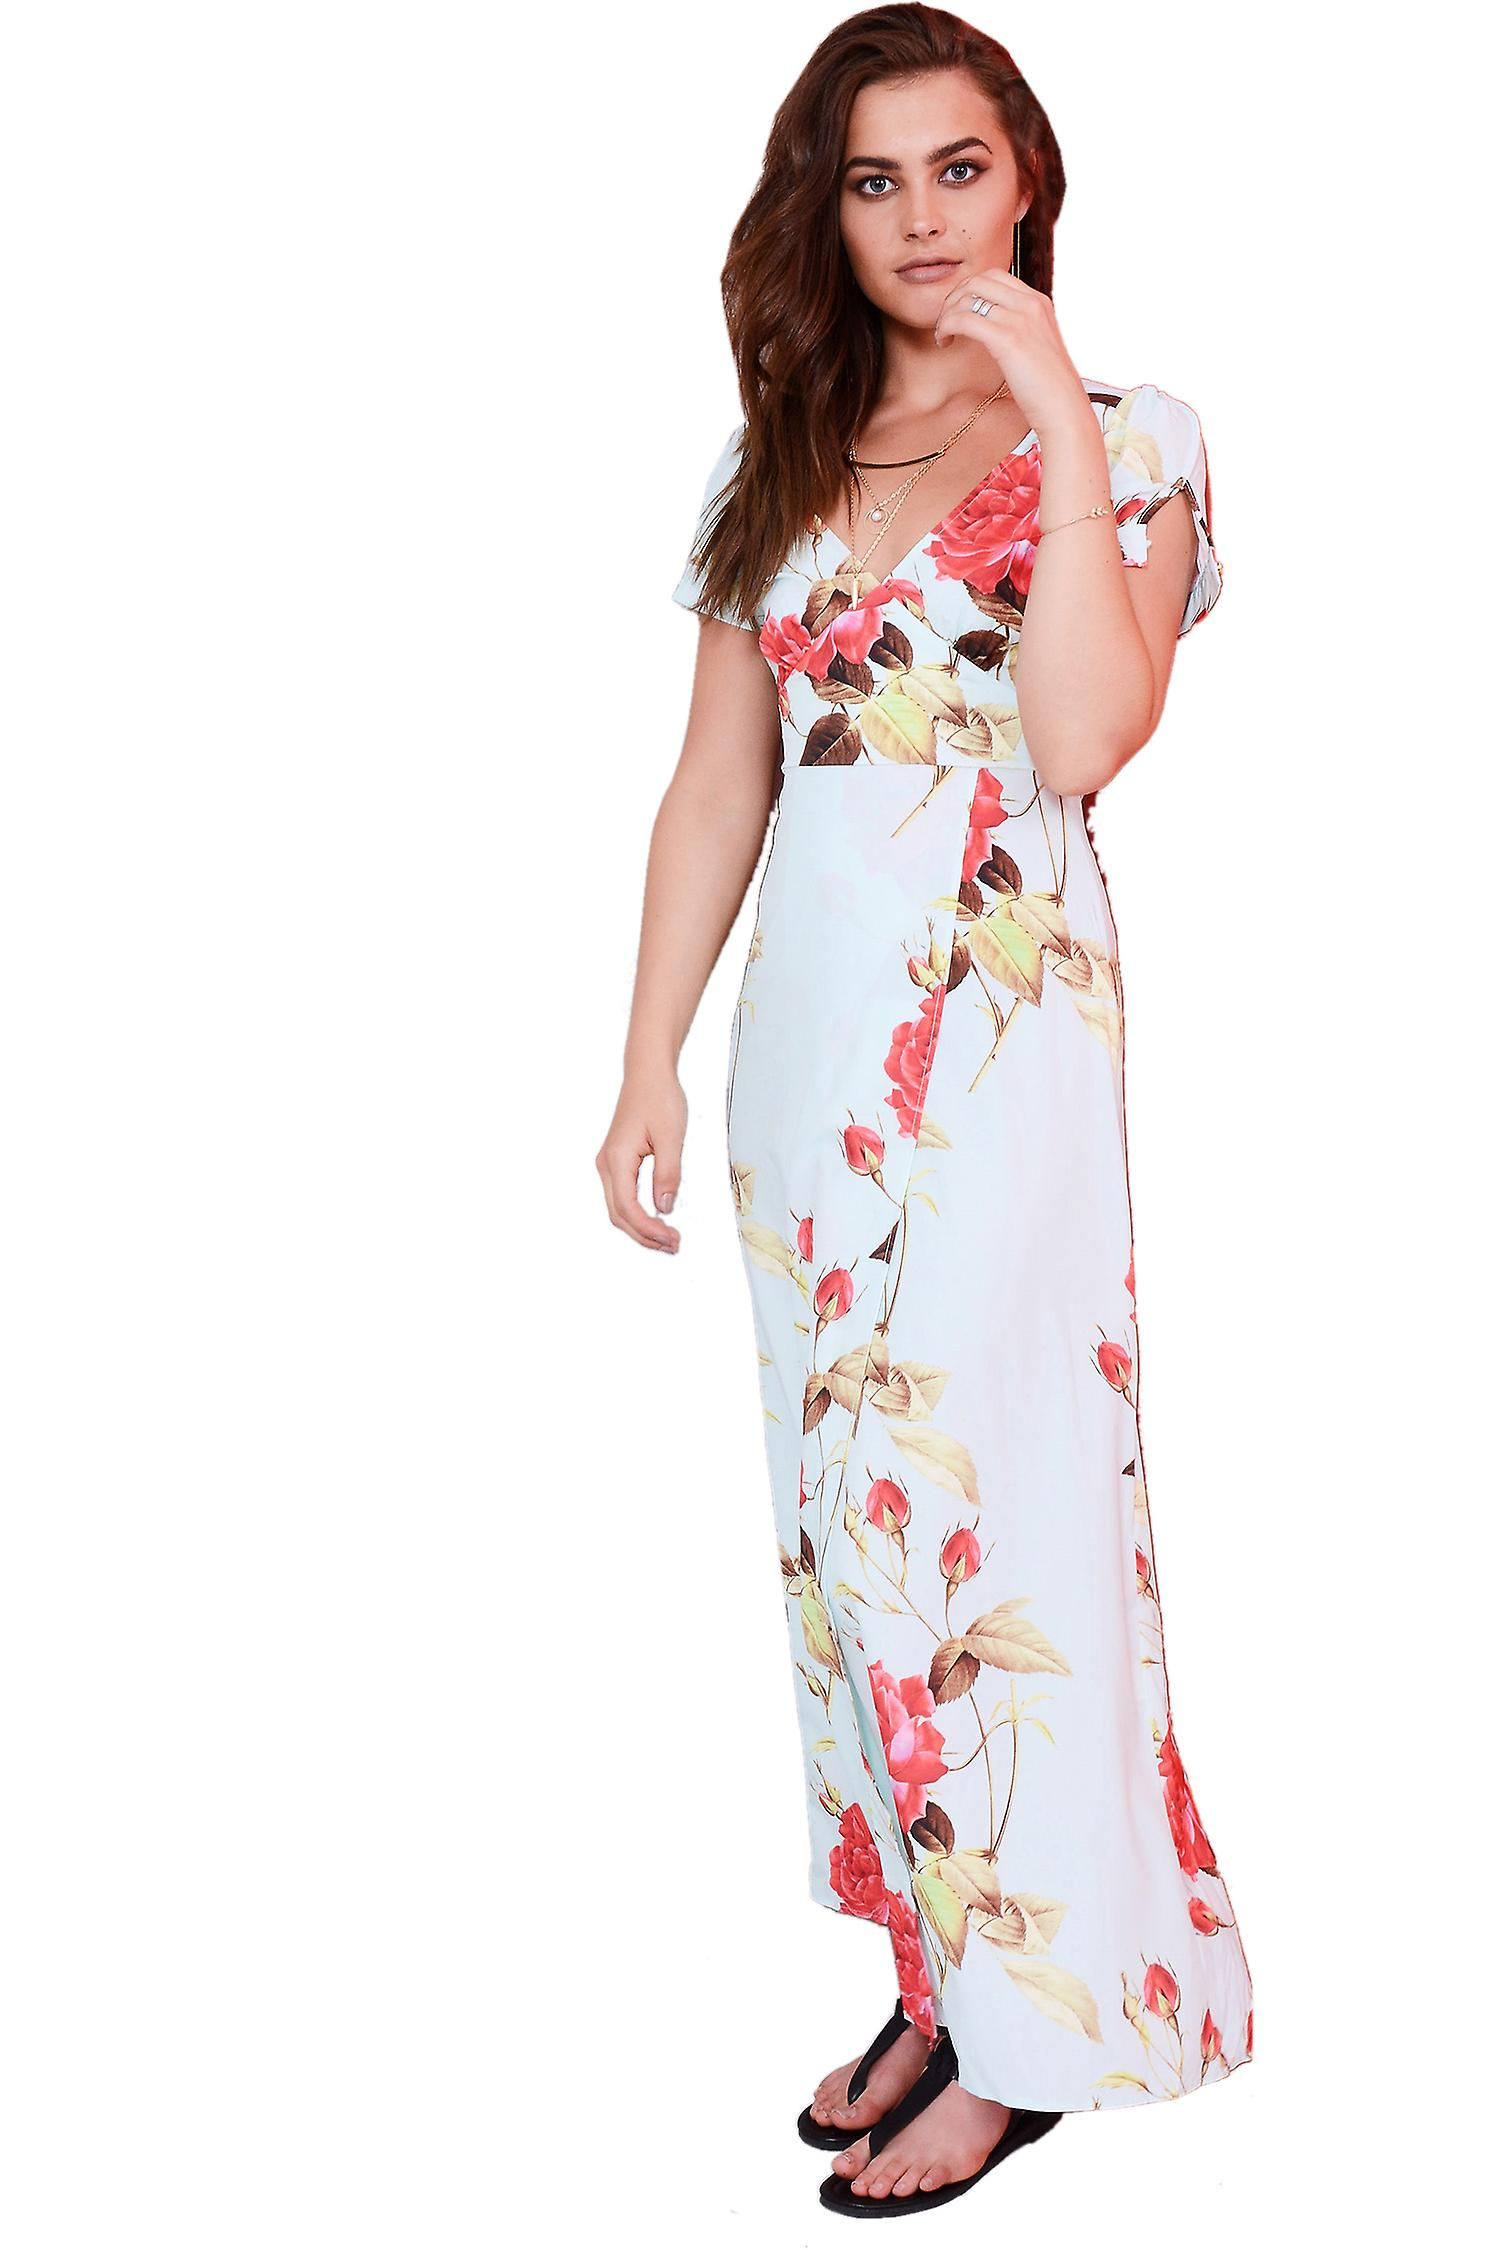 Lovemystyle Maxi Dress With Floral Print In Mint Green